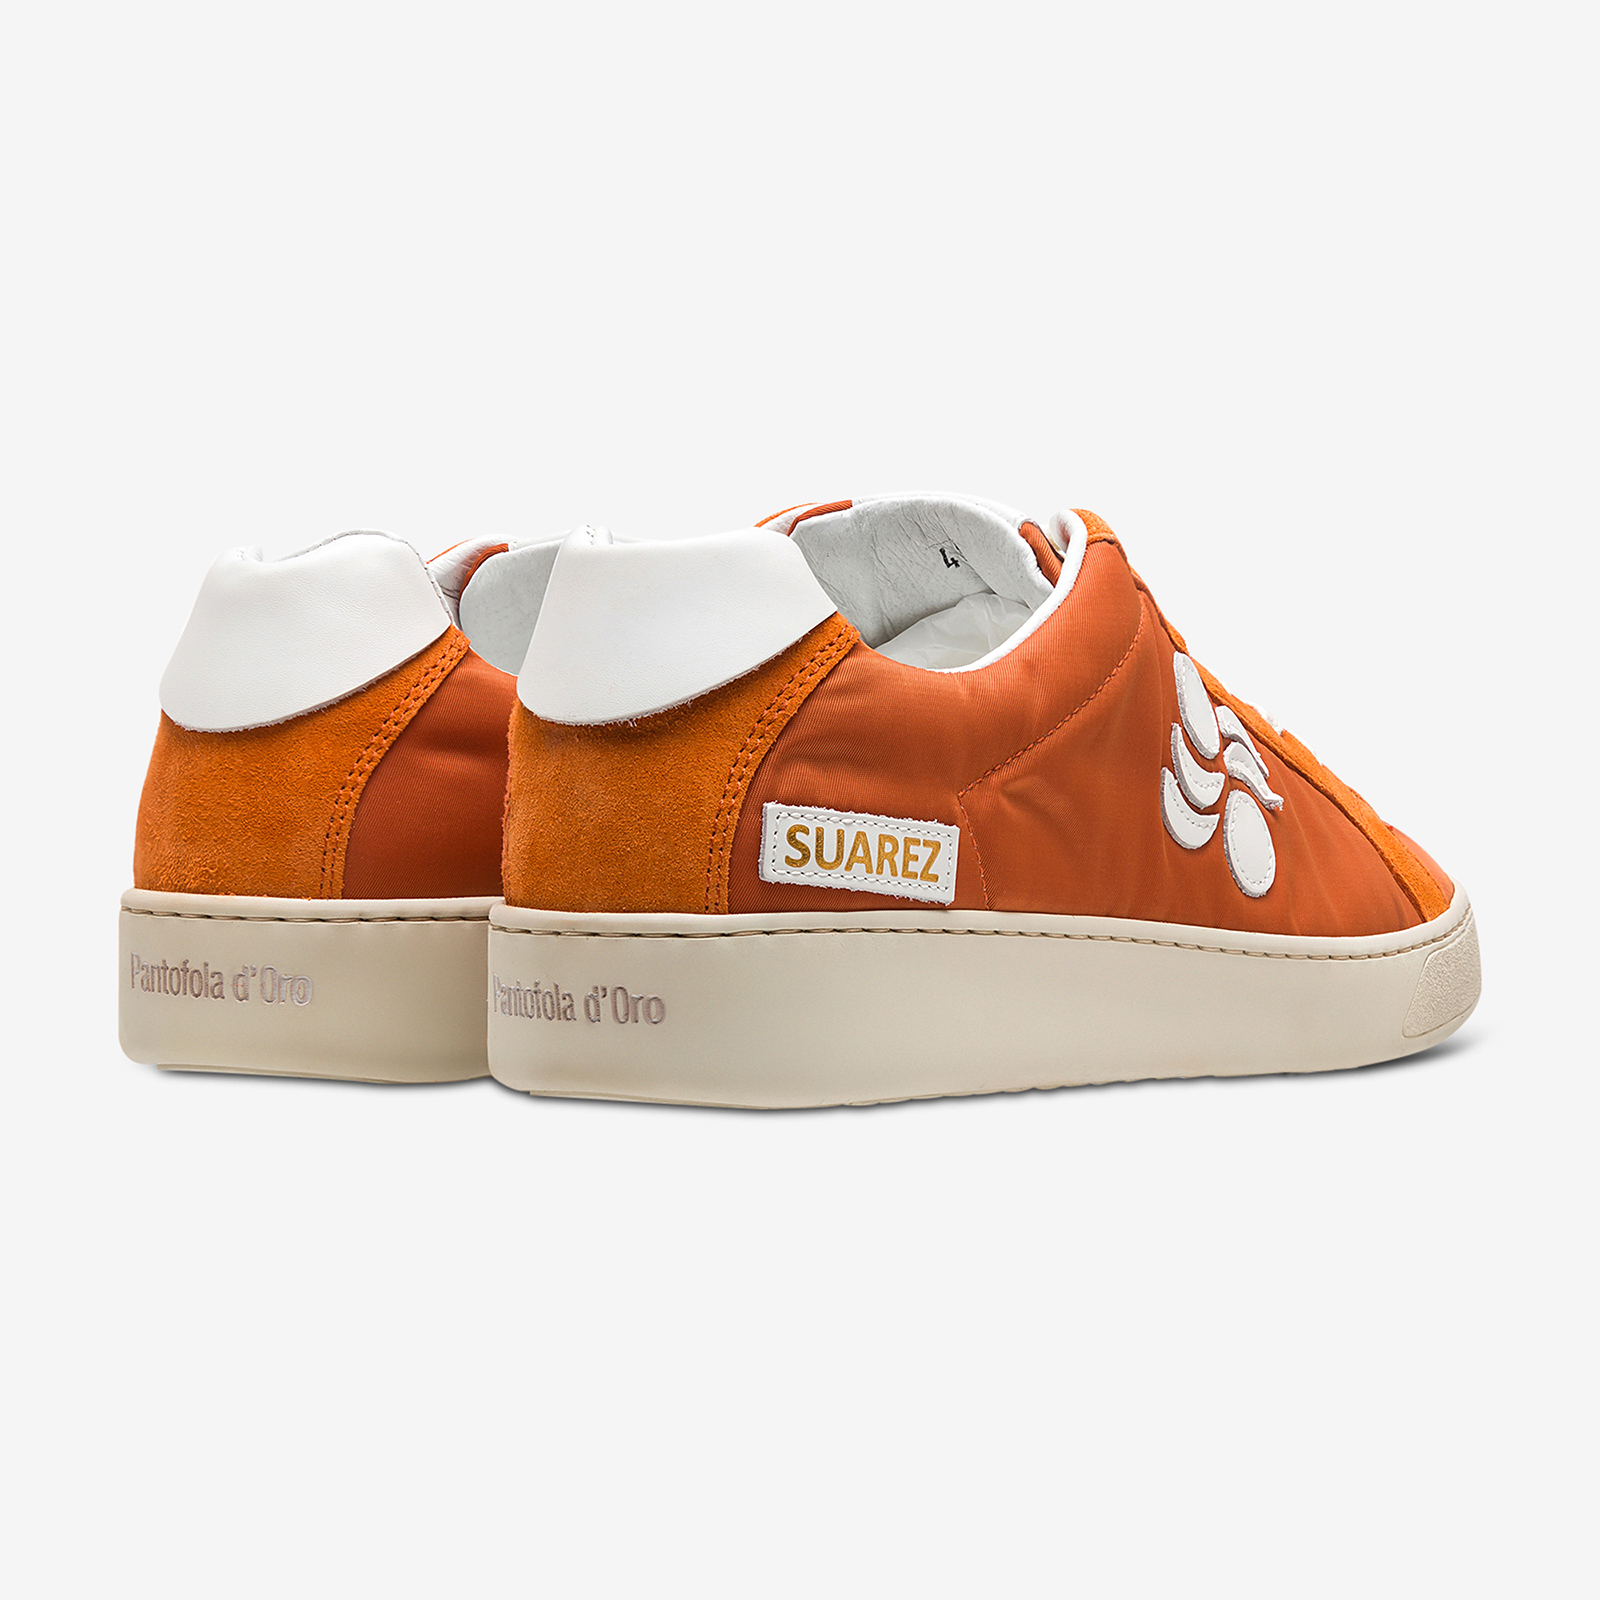 Sneakers product image